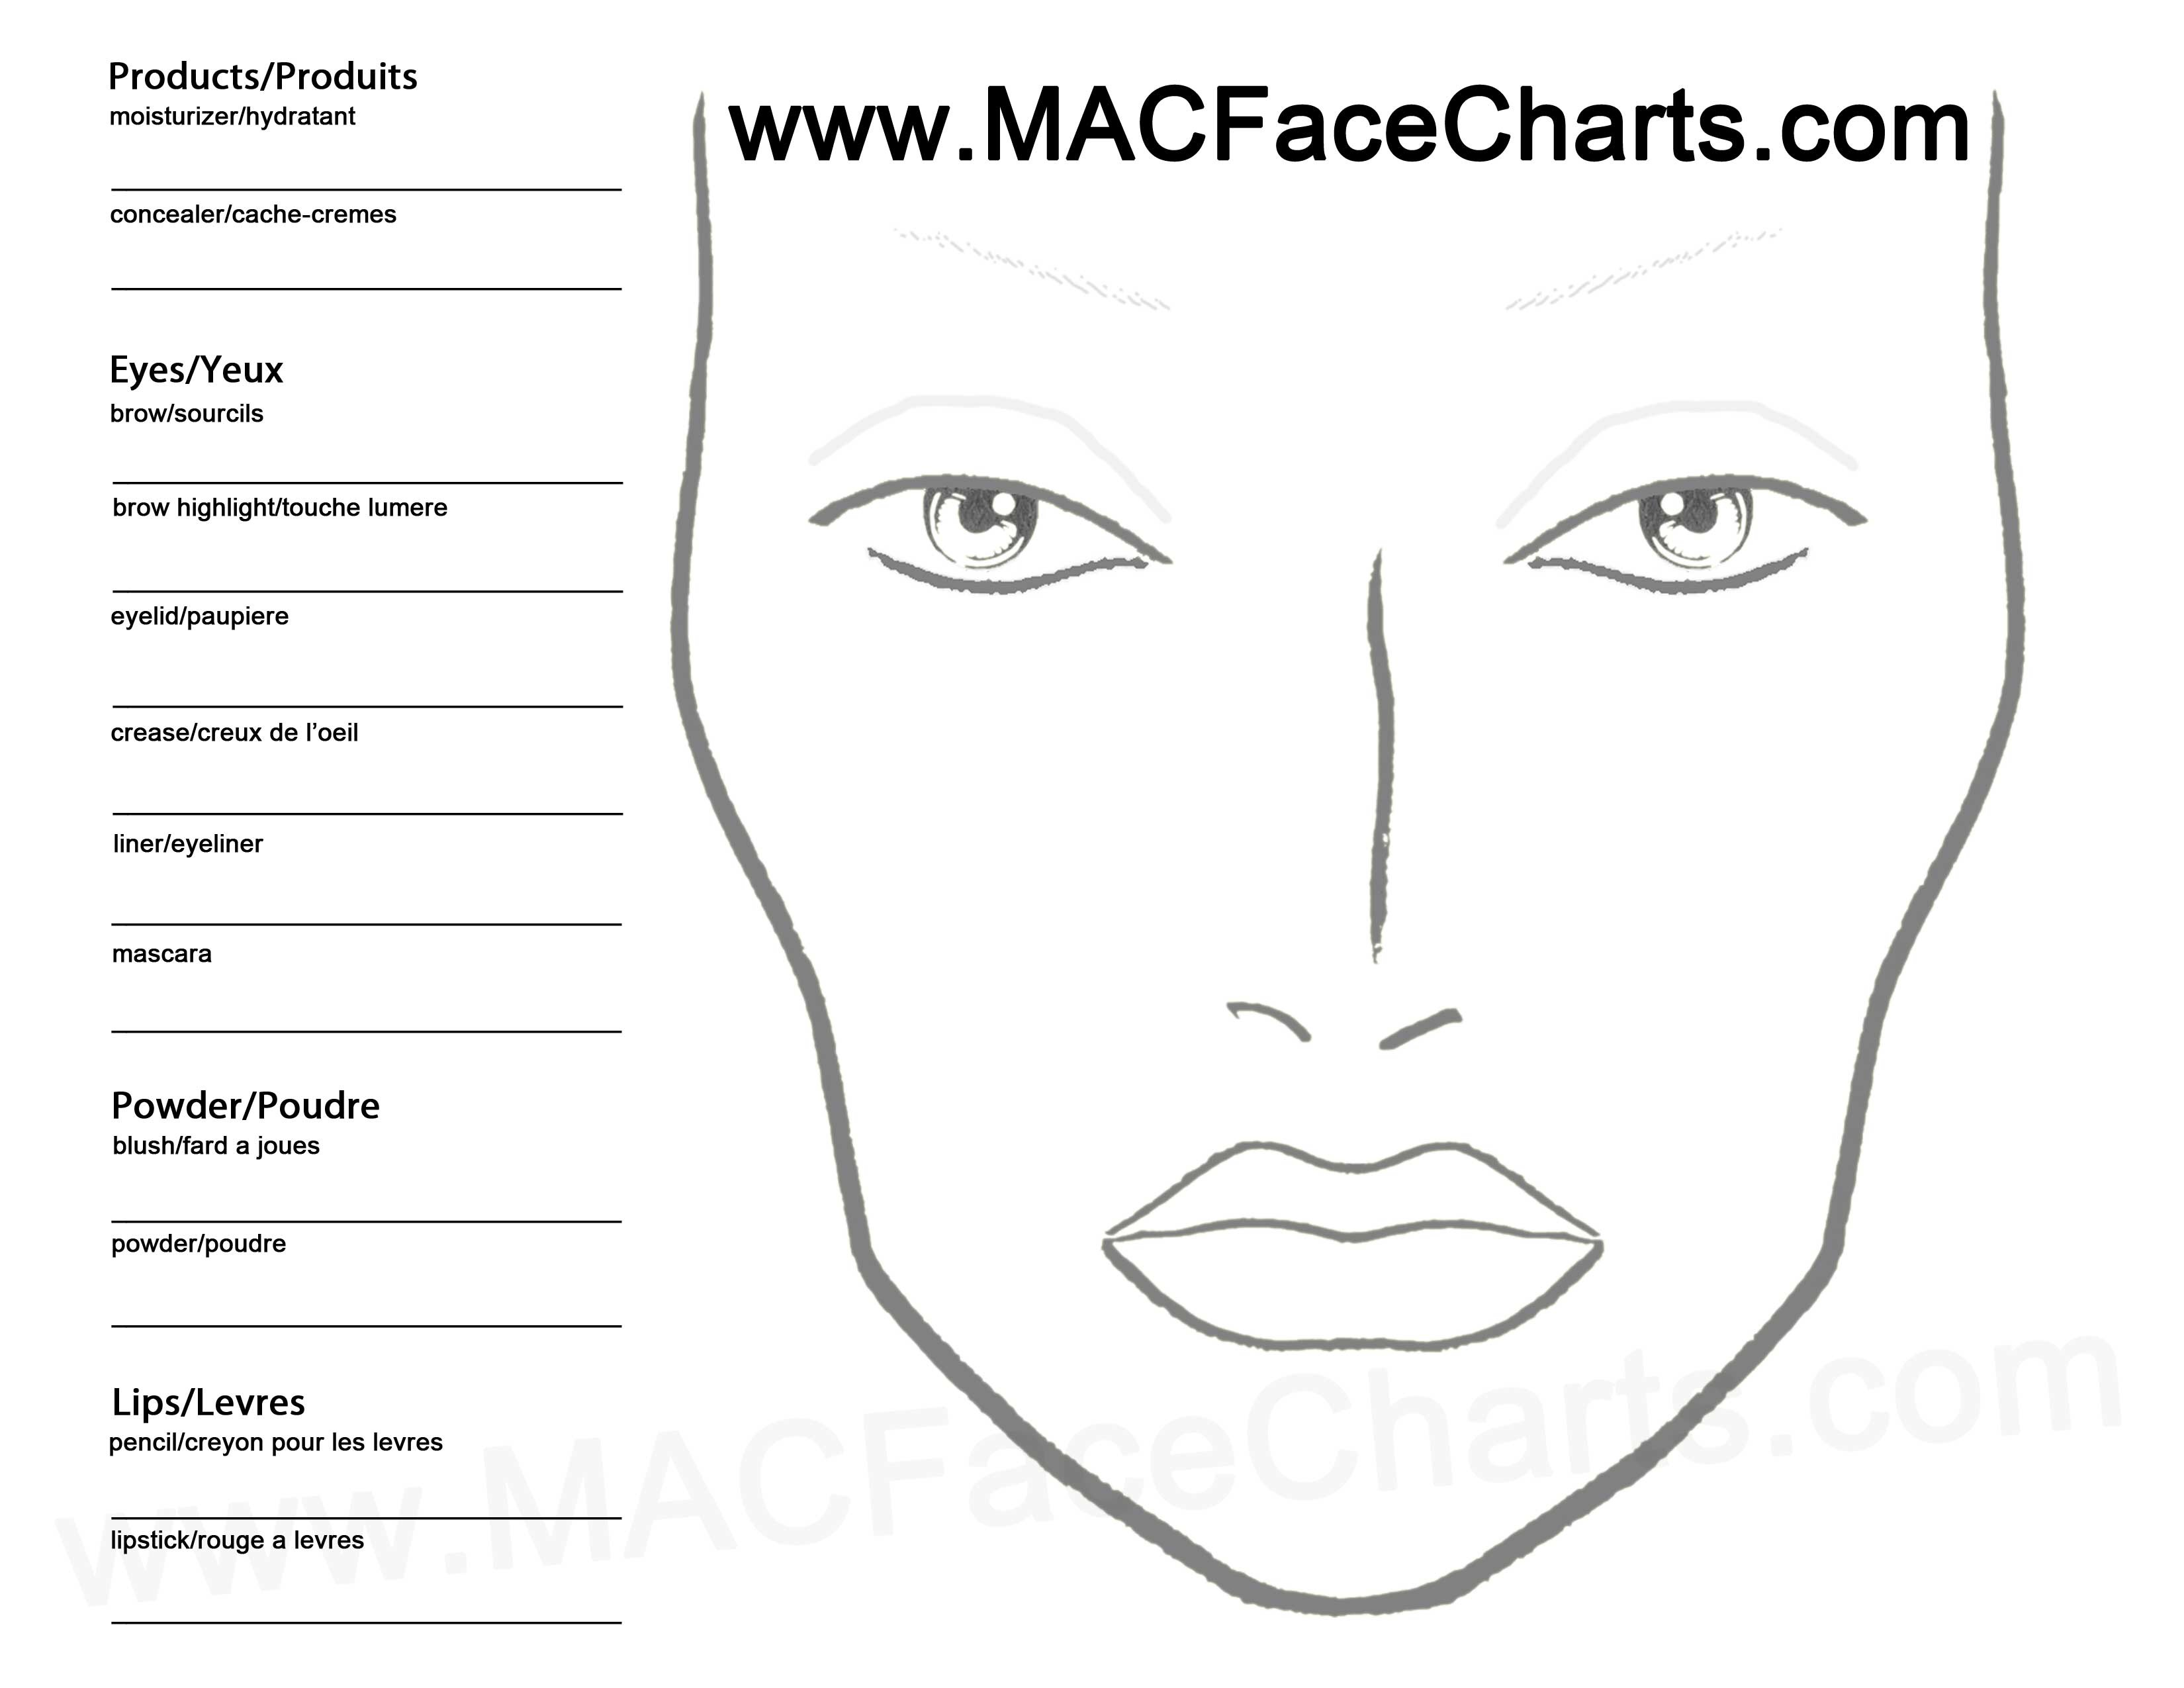 My Consultation Form Design And Make Up Plan